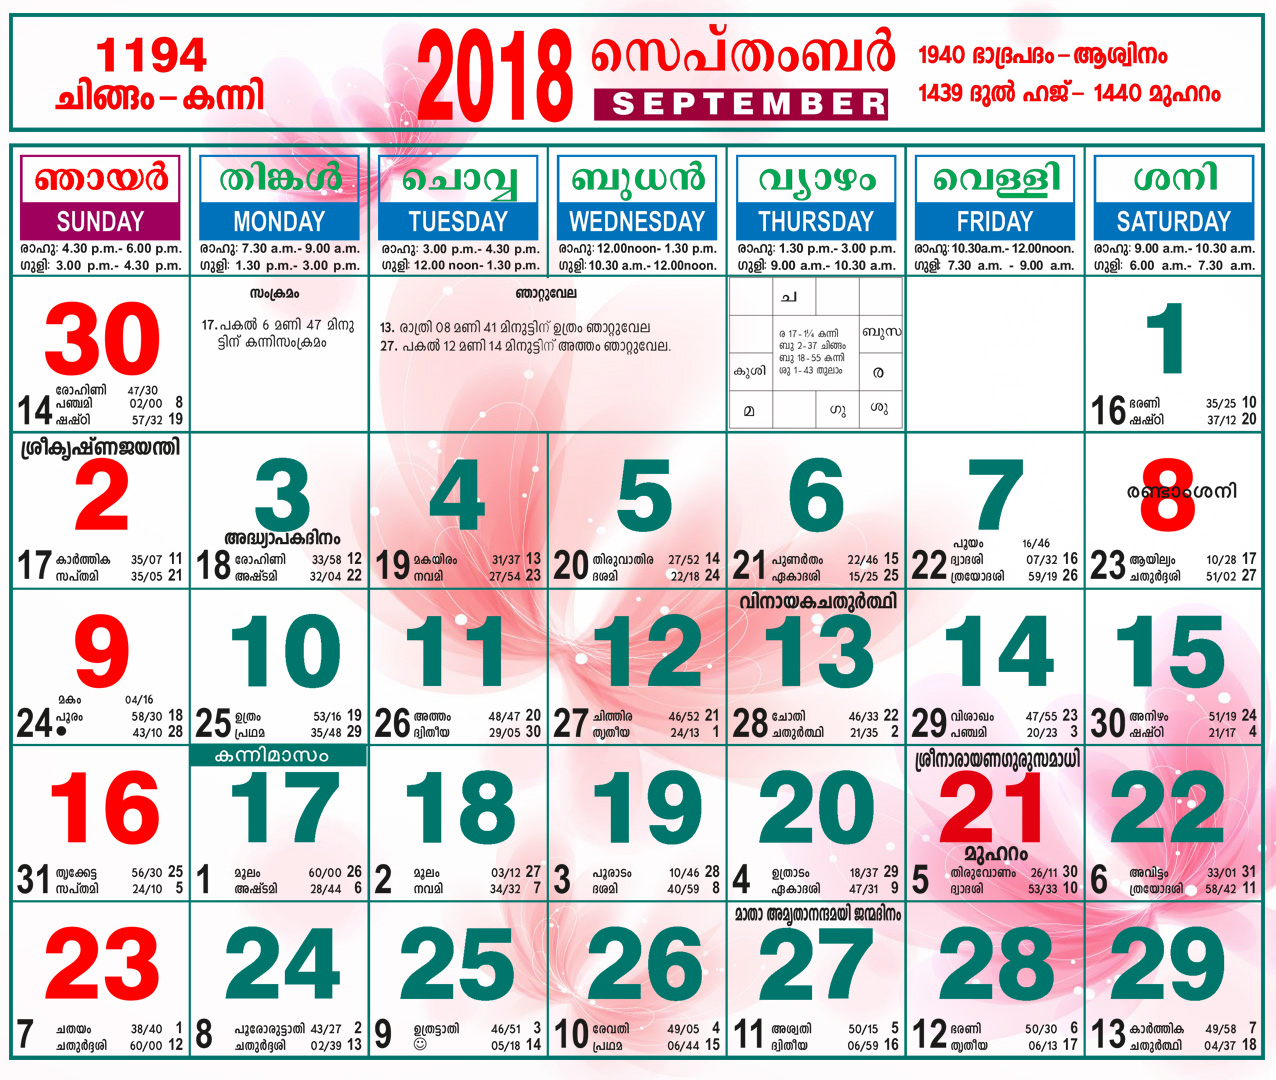 Malayalam Calendar September 2018 | | Calendarcraft intended for October 2018 Calendar Malayalam